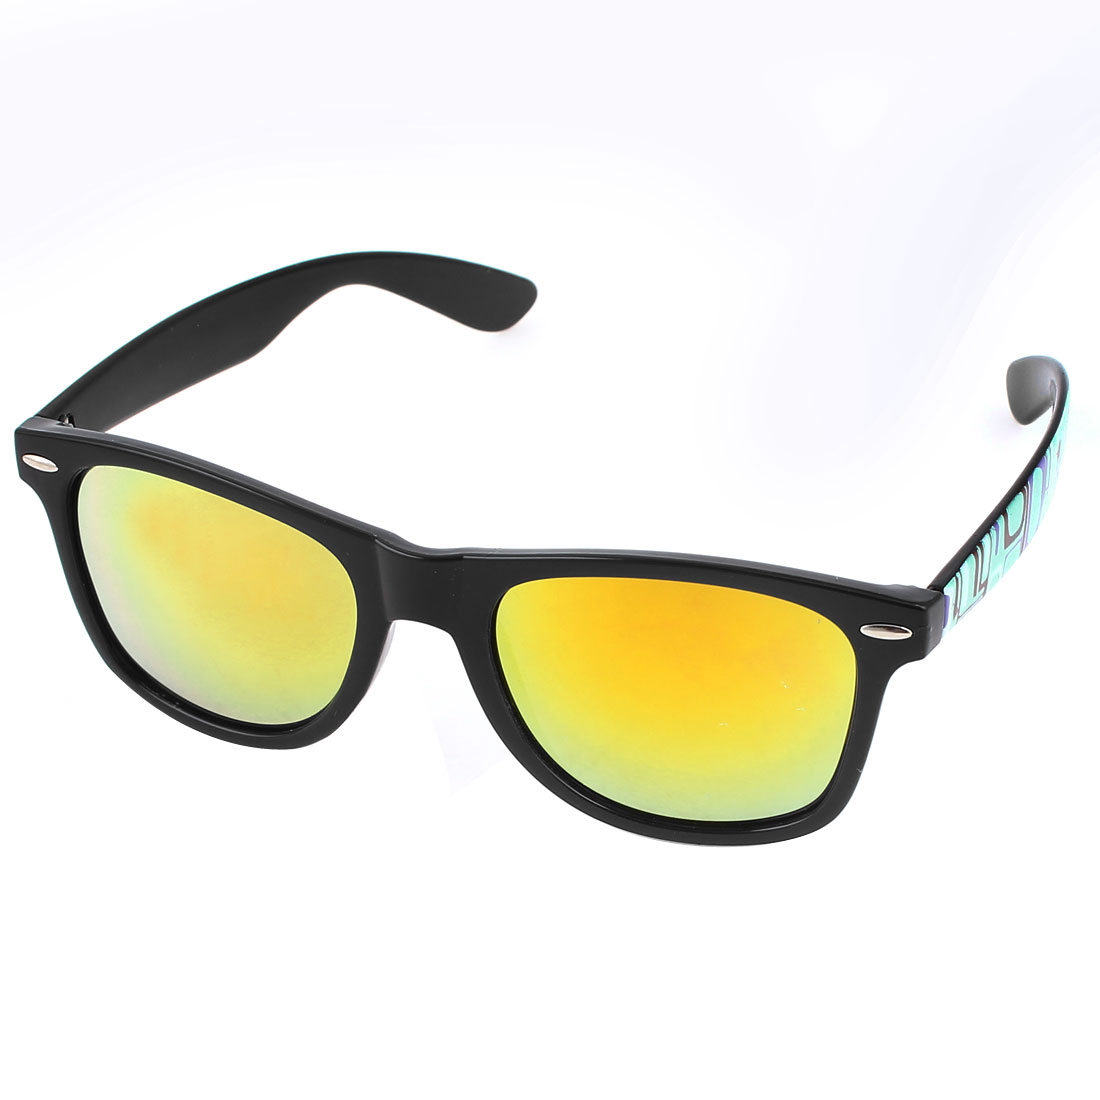 Light Blue Plastic Temple Full Frame Yellow Lens Sunglasses for Woman